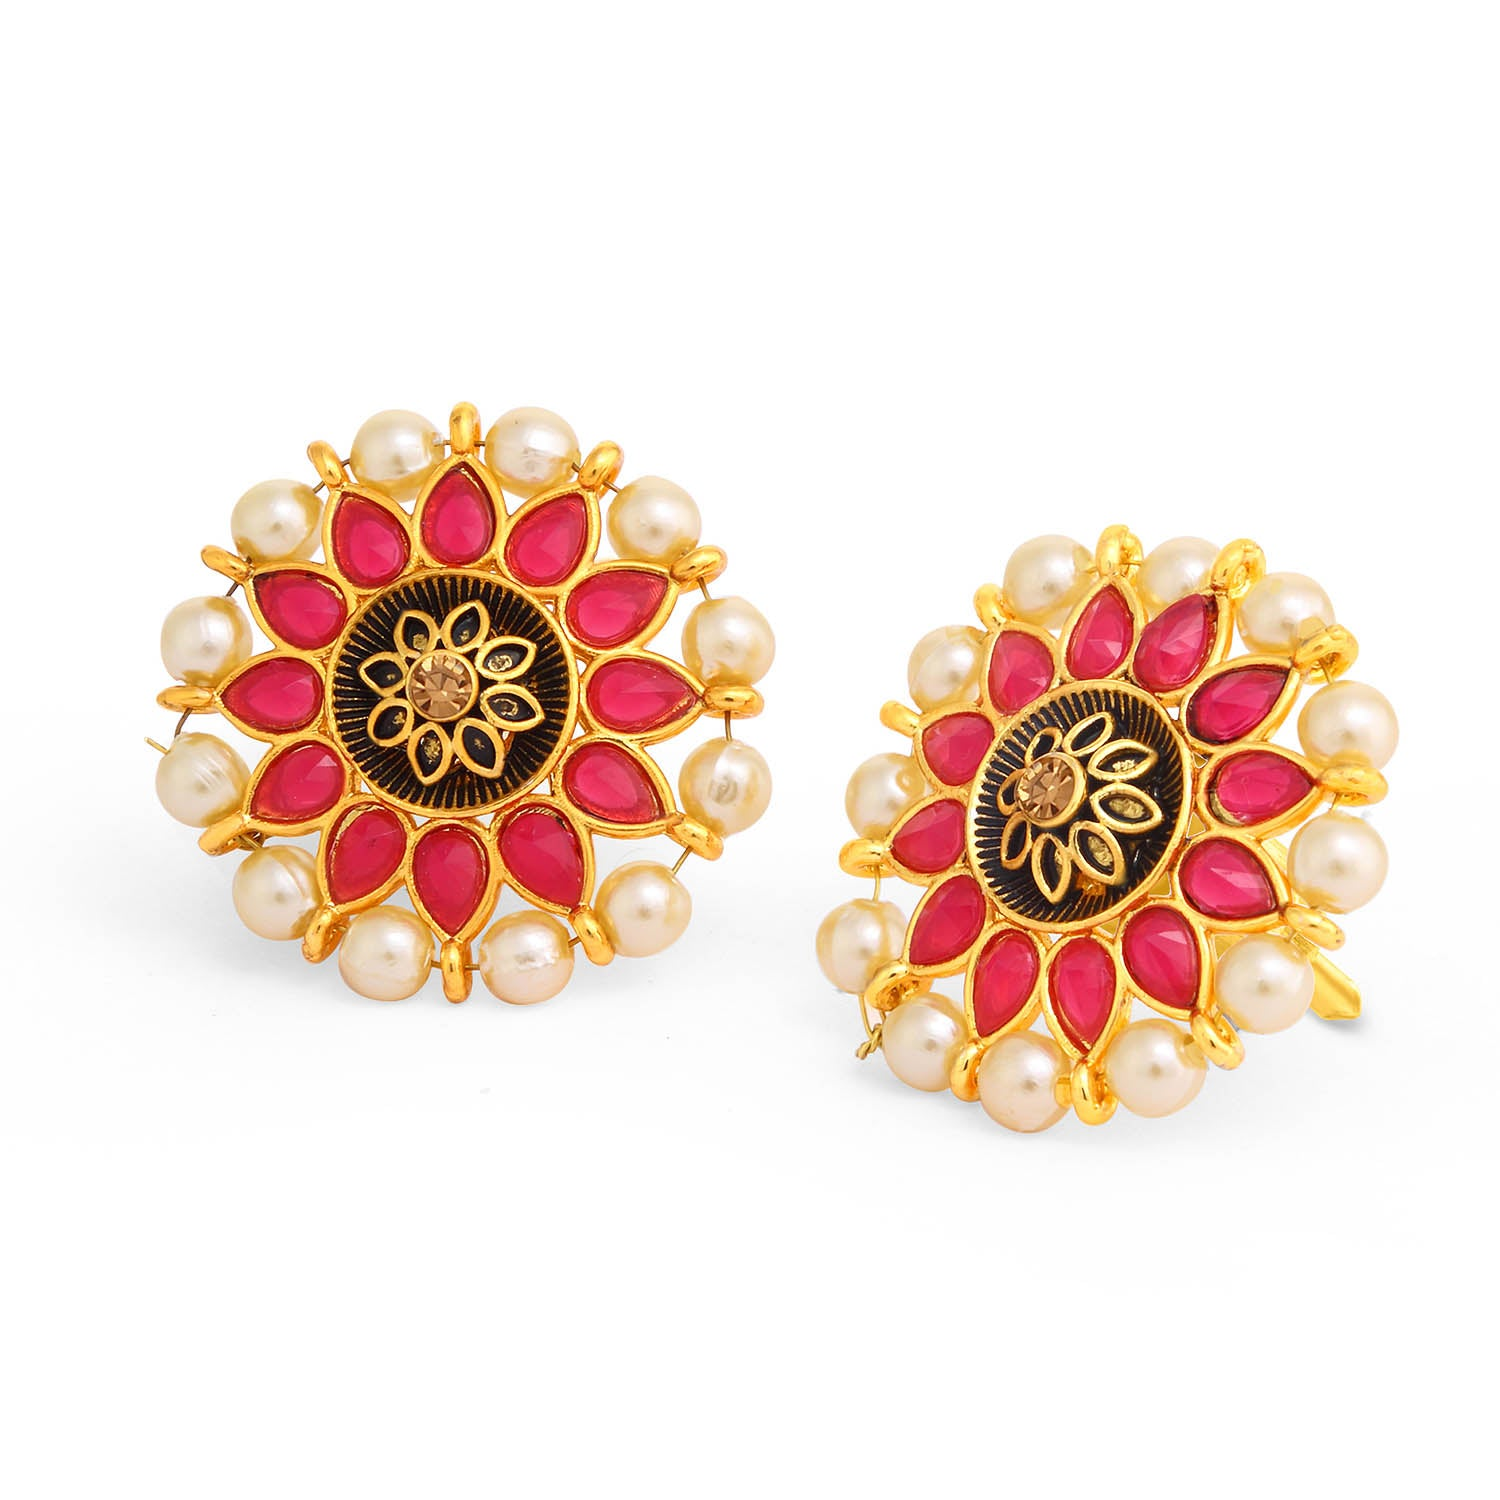 Sukkhi Adorable Floral Gold Plated Pearl Meenakari Stud Earring For Women-SUKKHI1-Earring